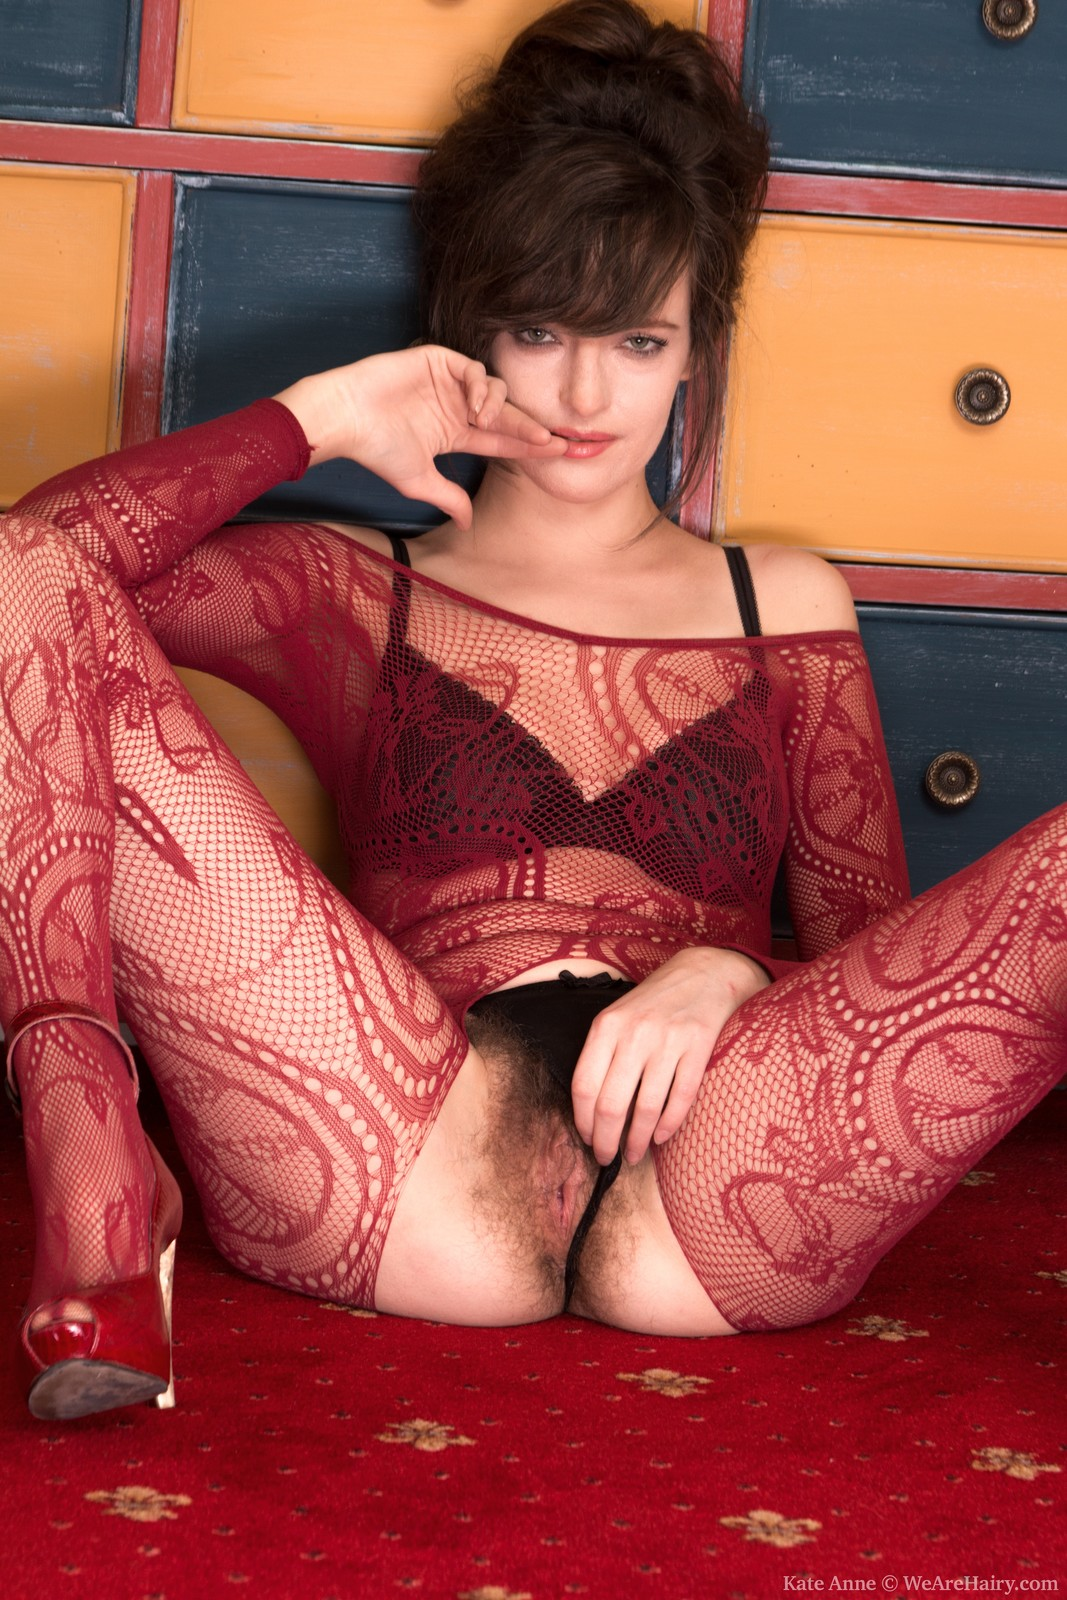 Hairy babe Kate Anne shocking her body stocking and lingerie